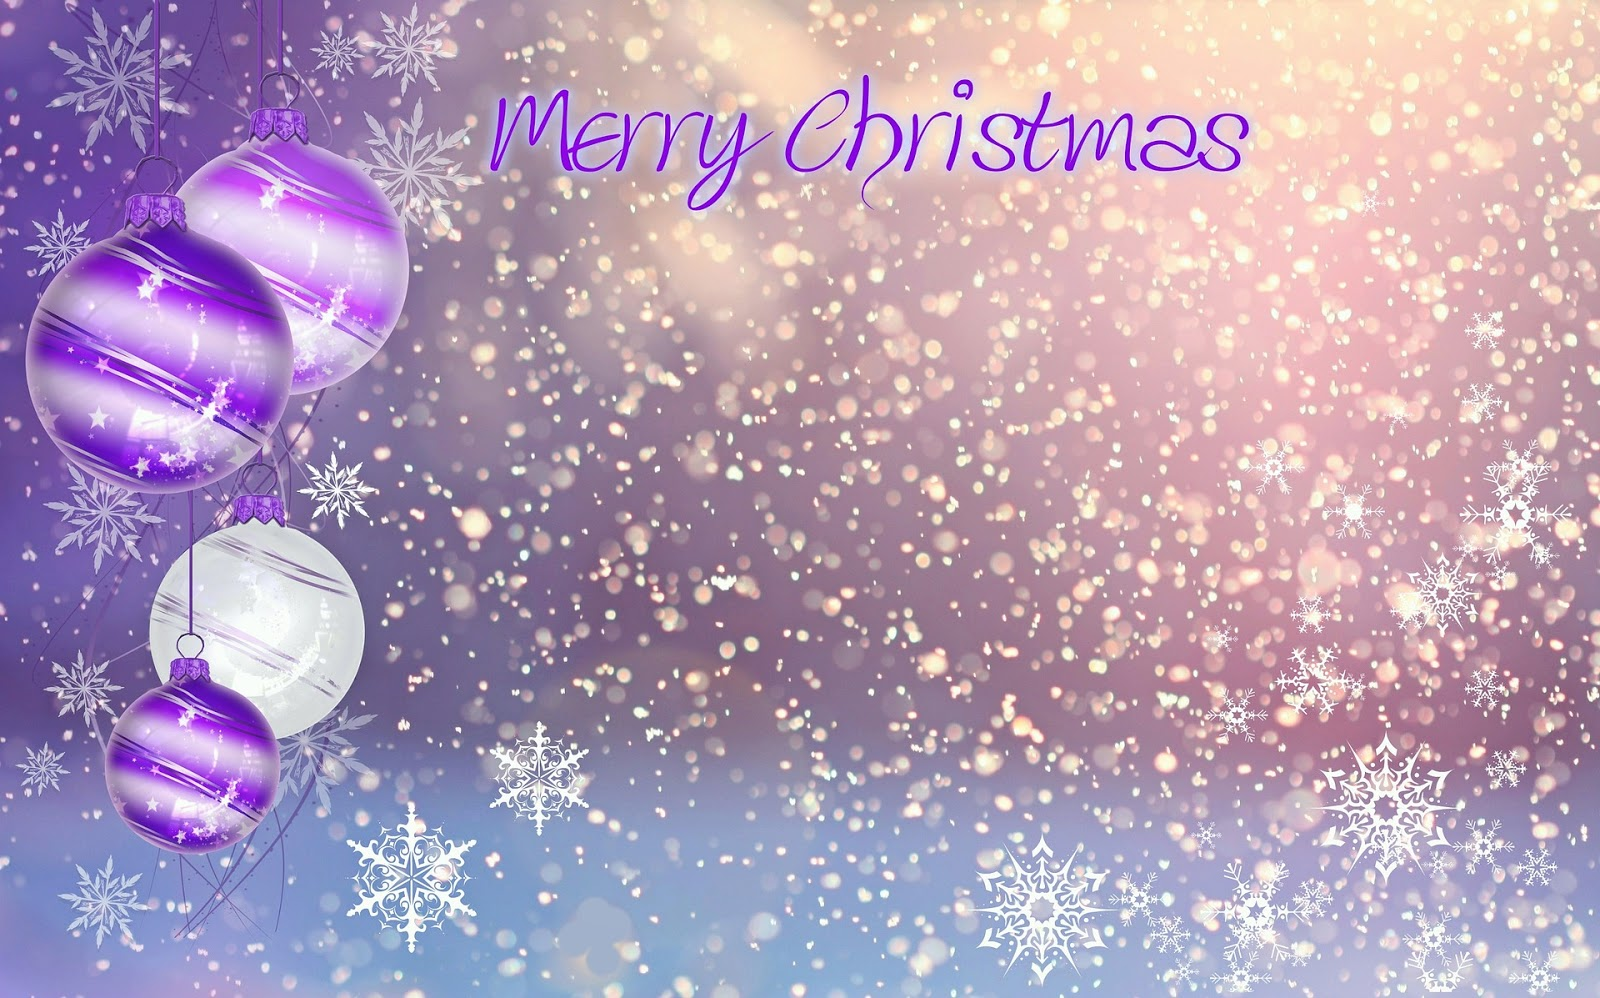 Merry Christmas 2016 HD Photos Free Download